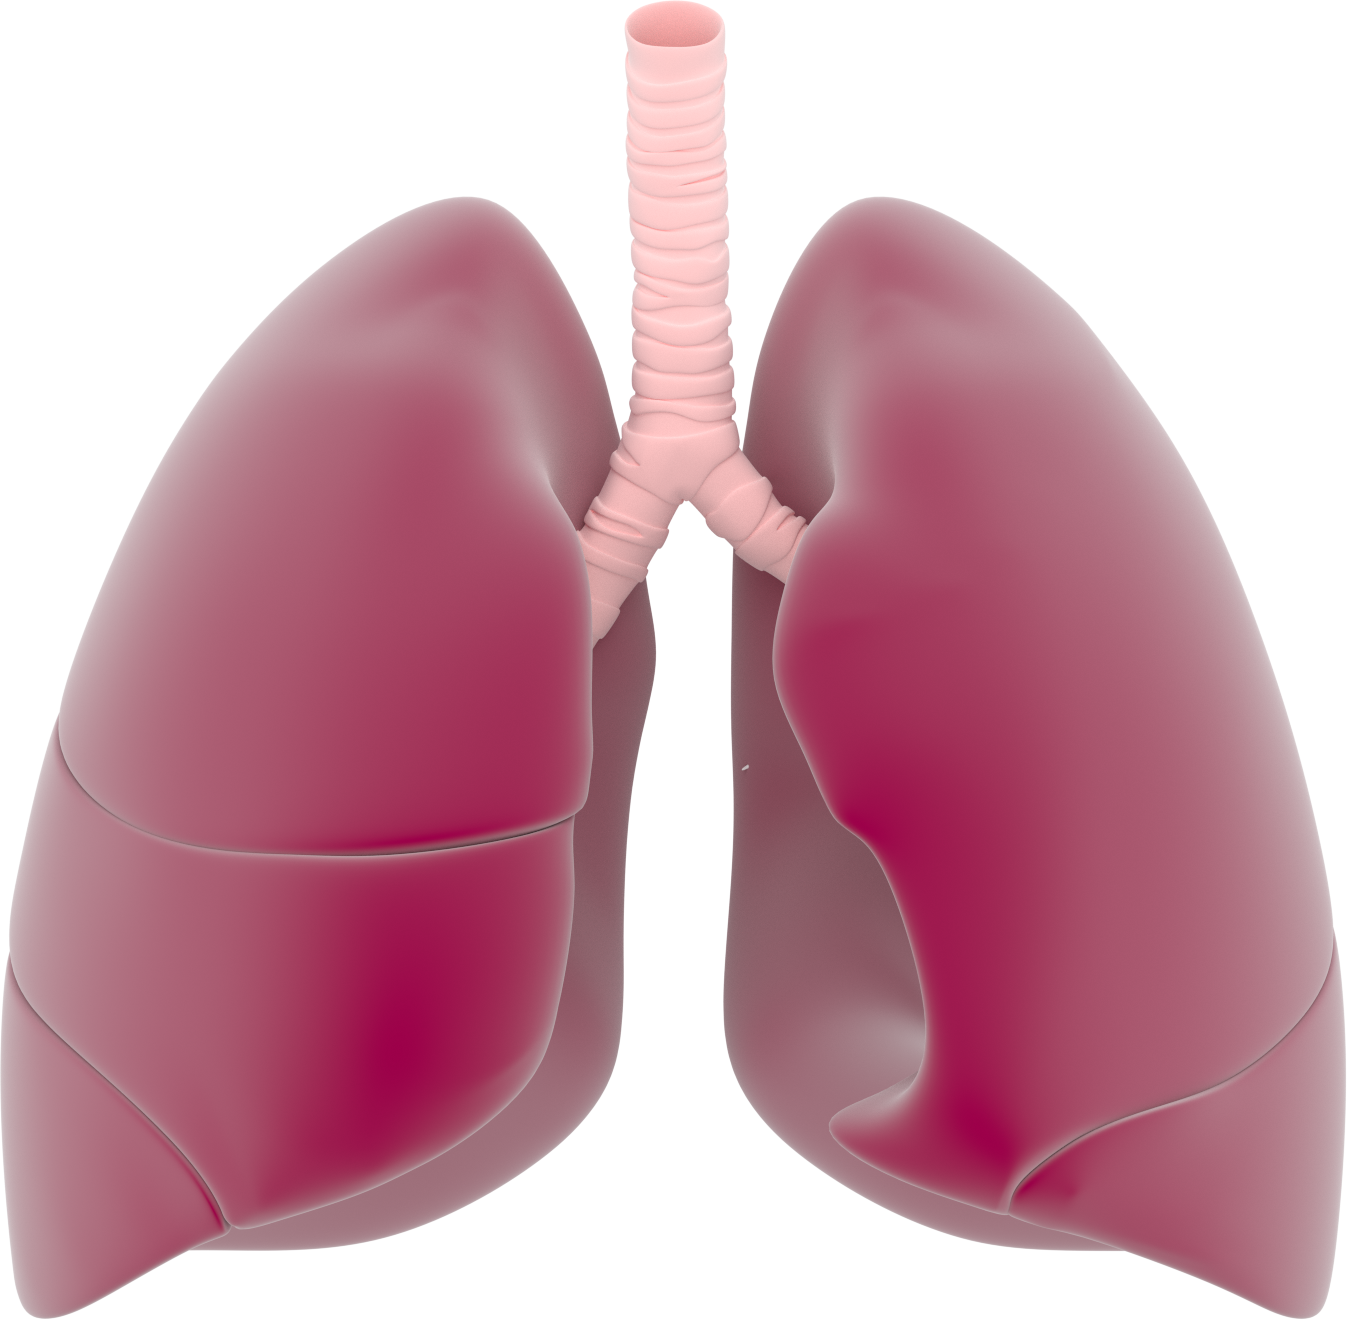 Png transparent images all. Lungs clipart animated